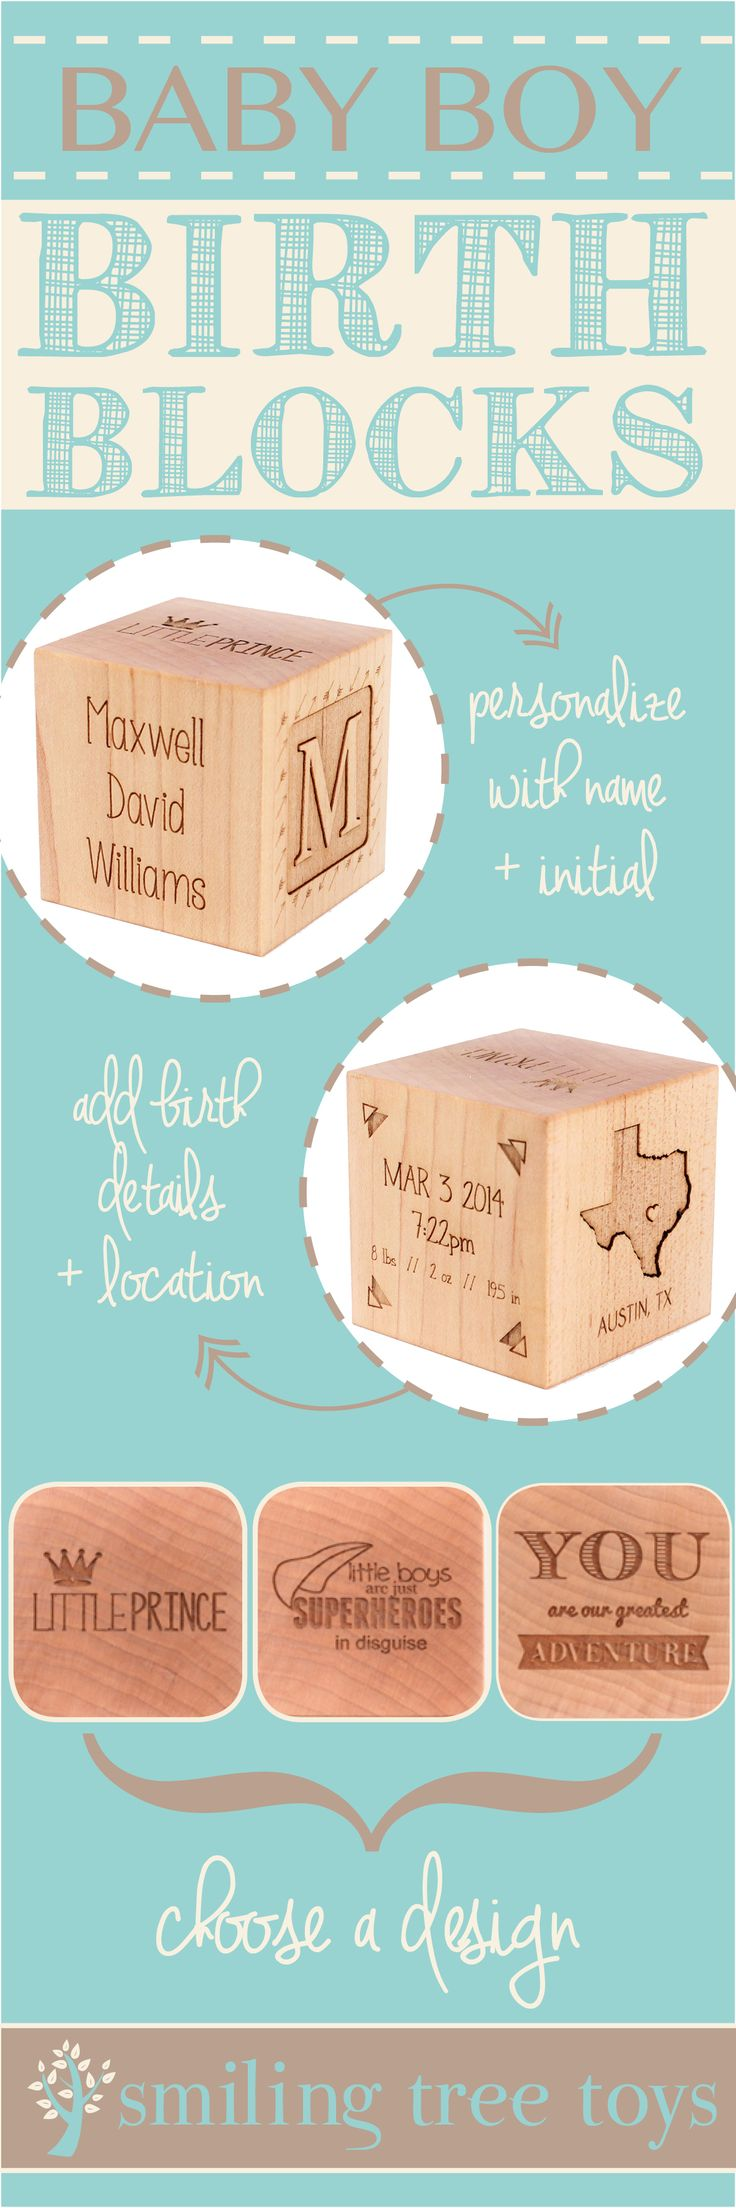 Keepsake Boy Birth Block // The perfect personalized, natural, heirloom gift celebrating baby boy's birth // Smiling Tree Toys